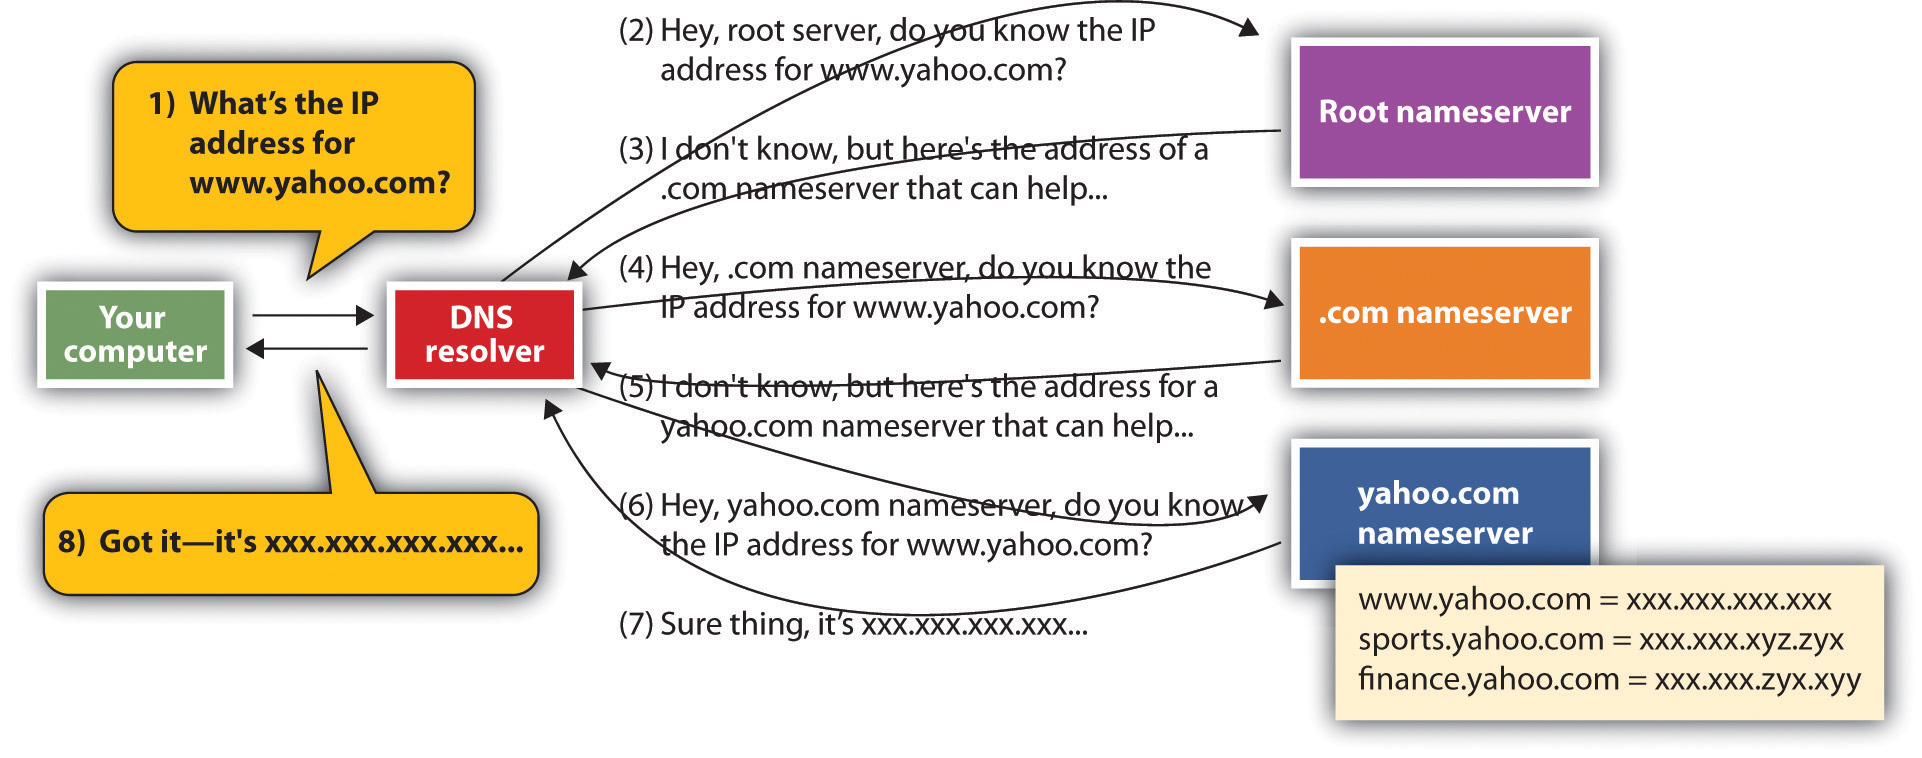 When your computer needs to find the IP address for a host or domain name, it sends a message to a DNS resolver, which looks up the IP address starting at the root nameserver. Once the lookup has taken place, that IP address can be saved in a holding space called a cache, to speed future lookups.